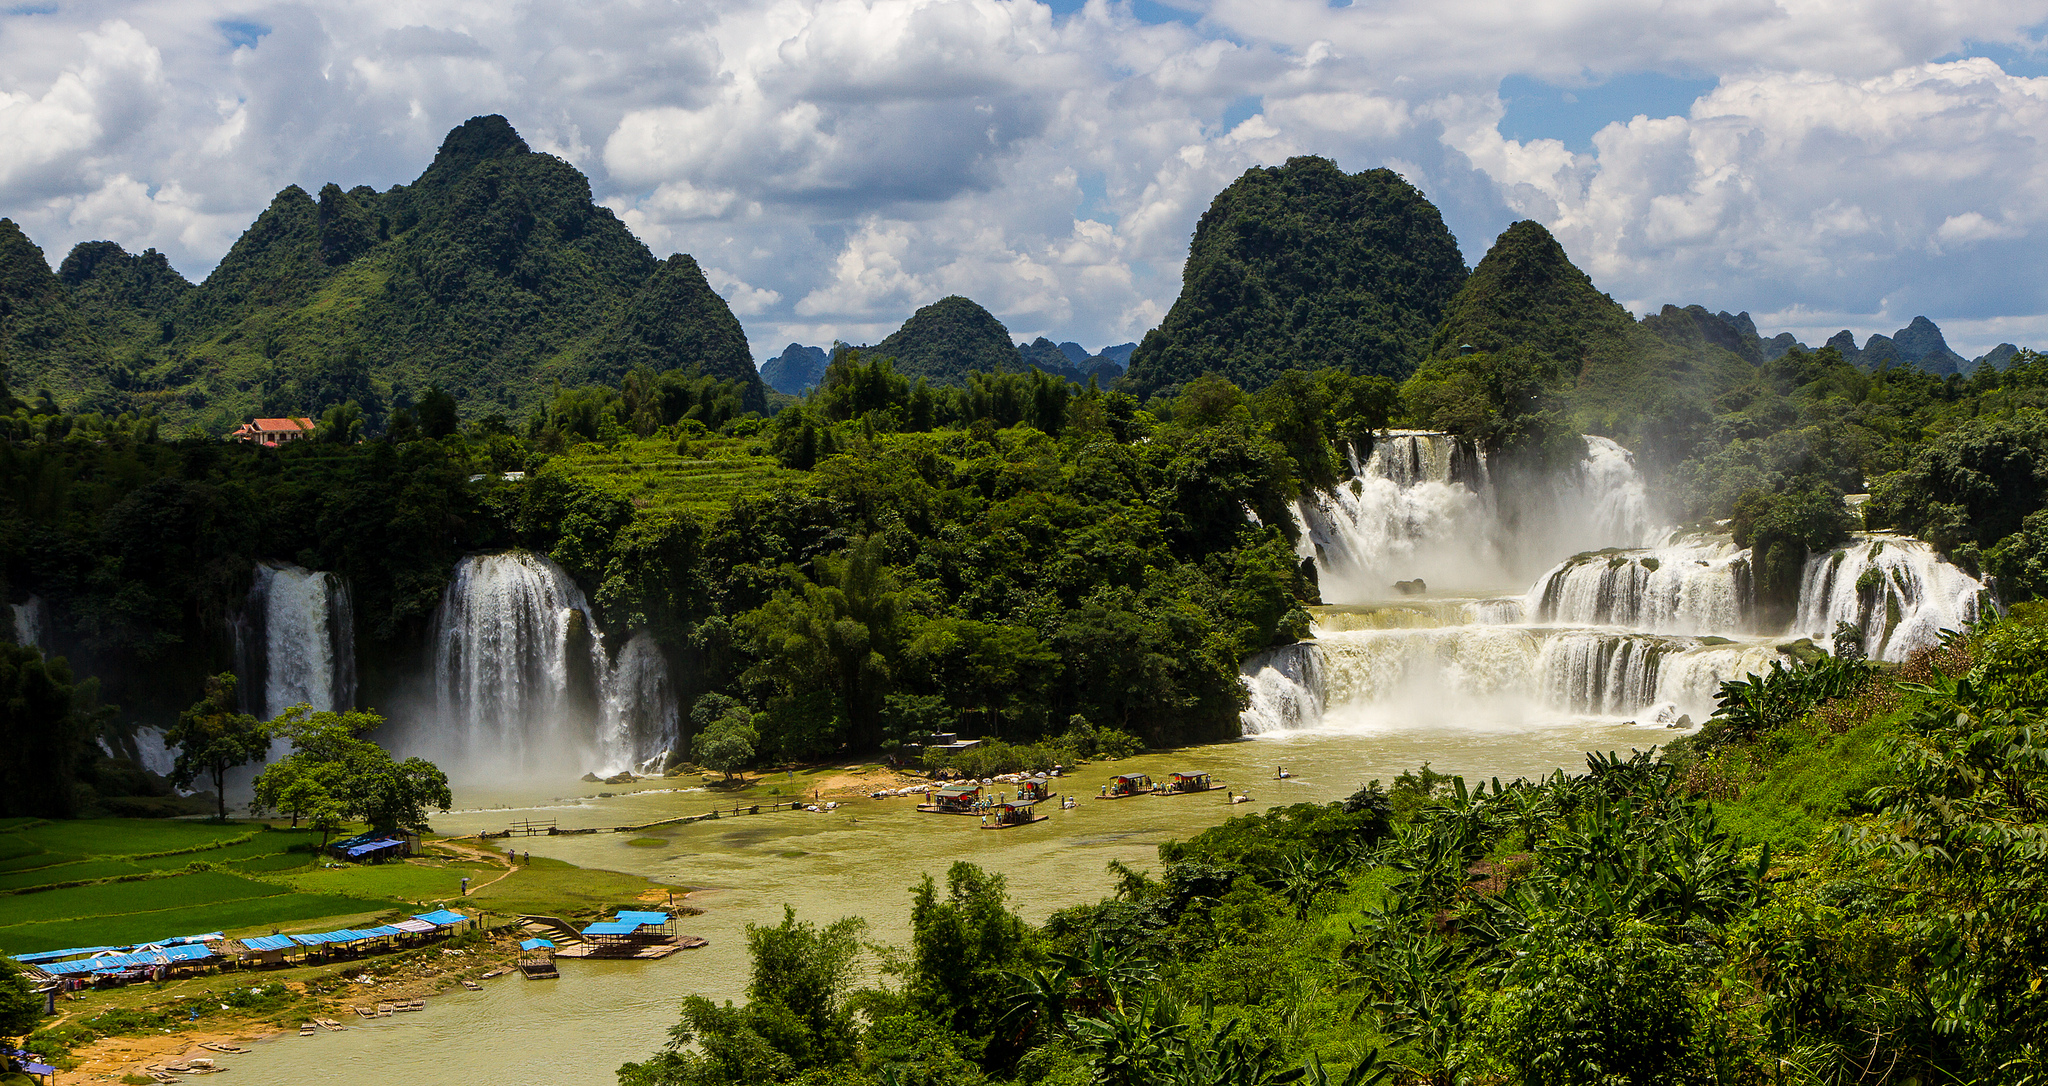 Free Fall Waterfall Desktop Wallpaper Ban Gioc Detian Falls Waterfall In Vietnam Thousand